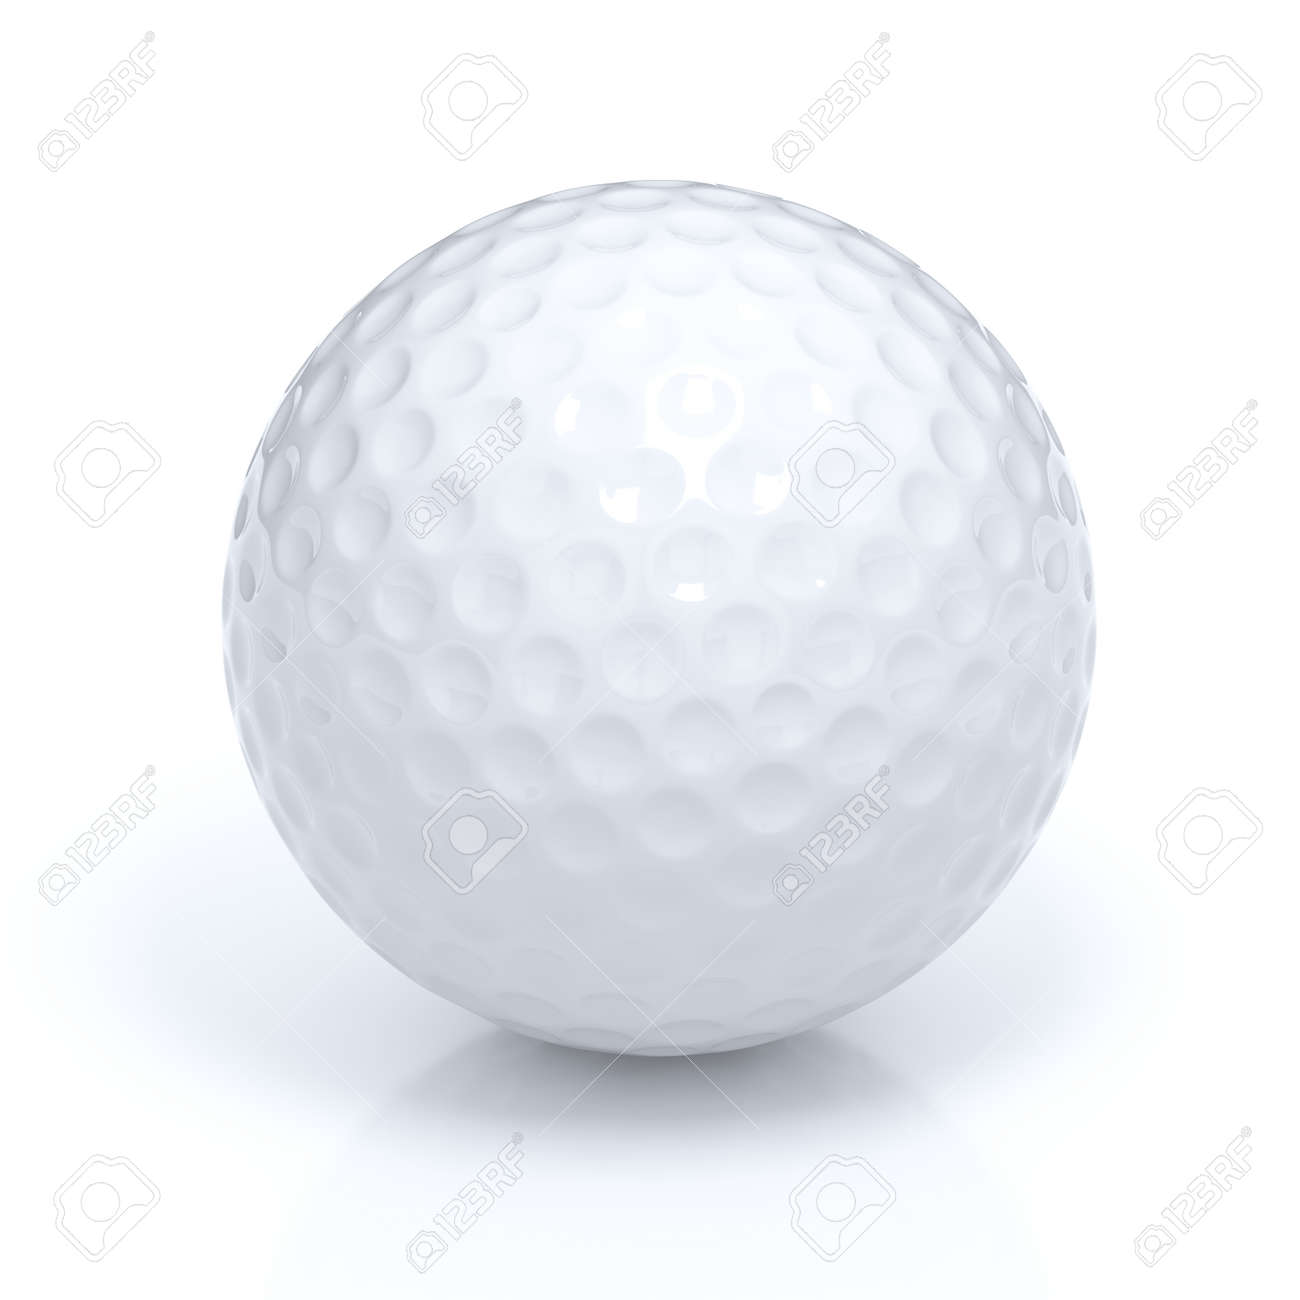 Isolated golf ball with clipping path - 45142020